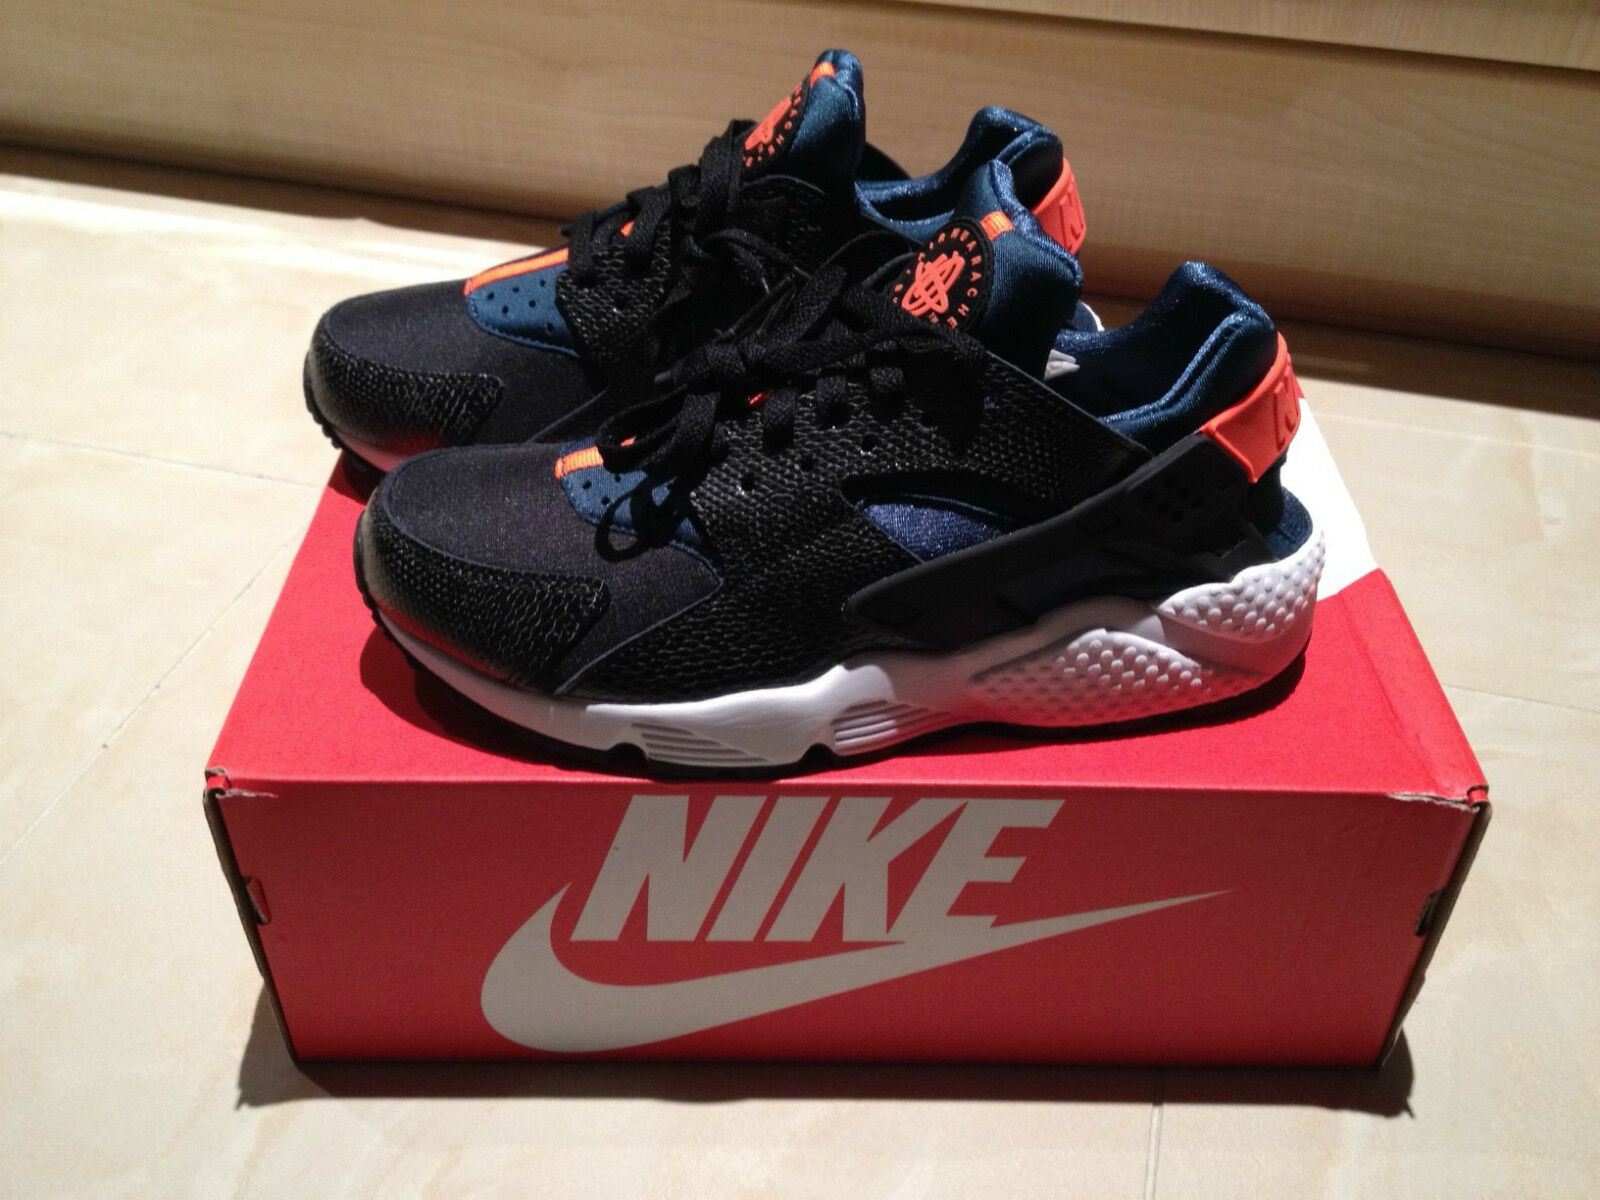 NIKE AIR HUARACHE BLACK orange blueE SIZES 4, 5, 6, 7 LIMITED EDITION NEW LOOK